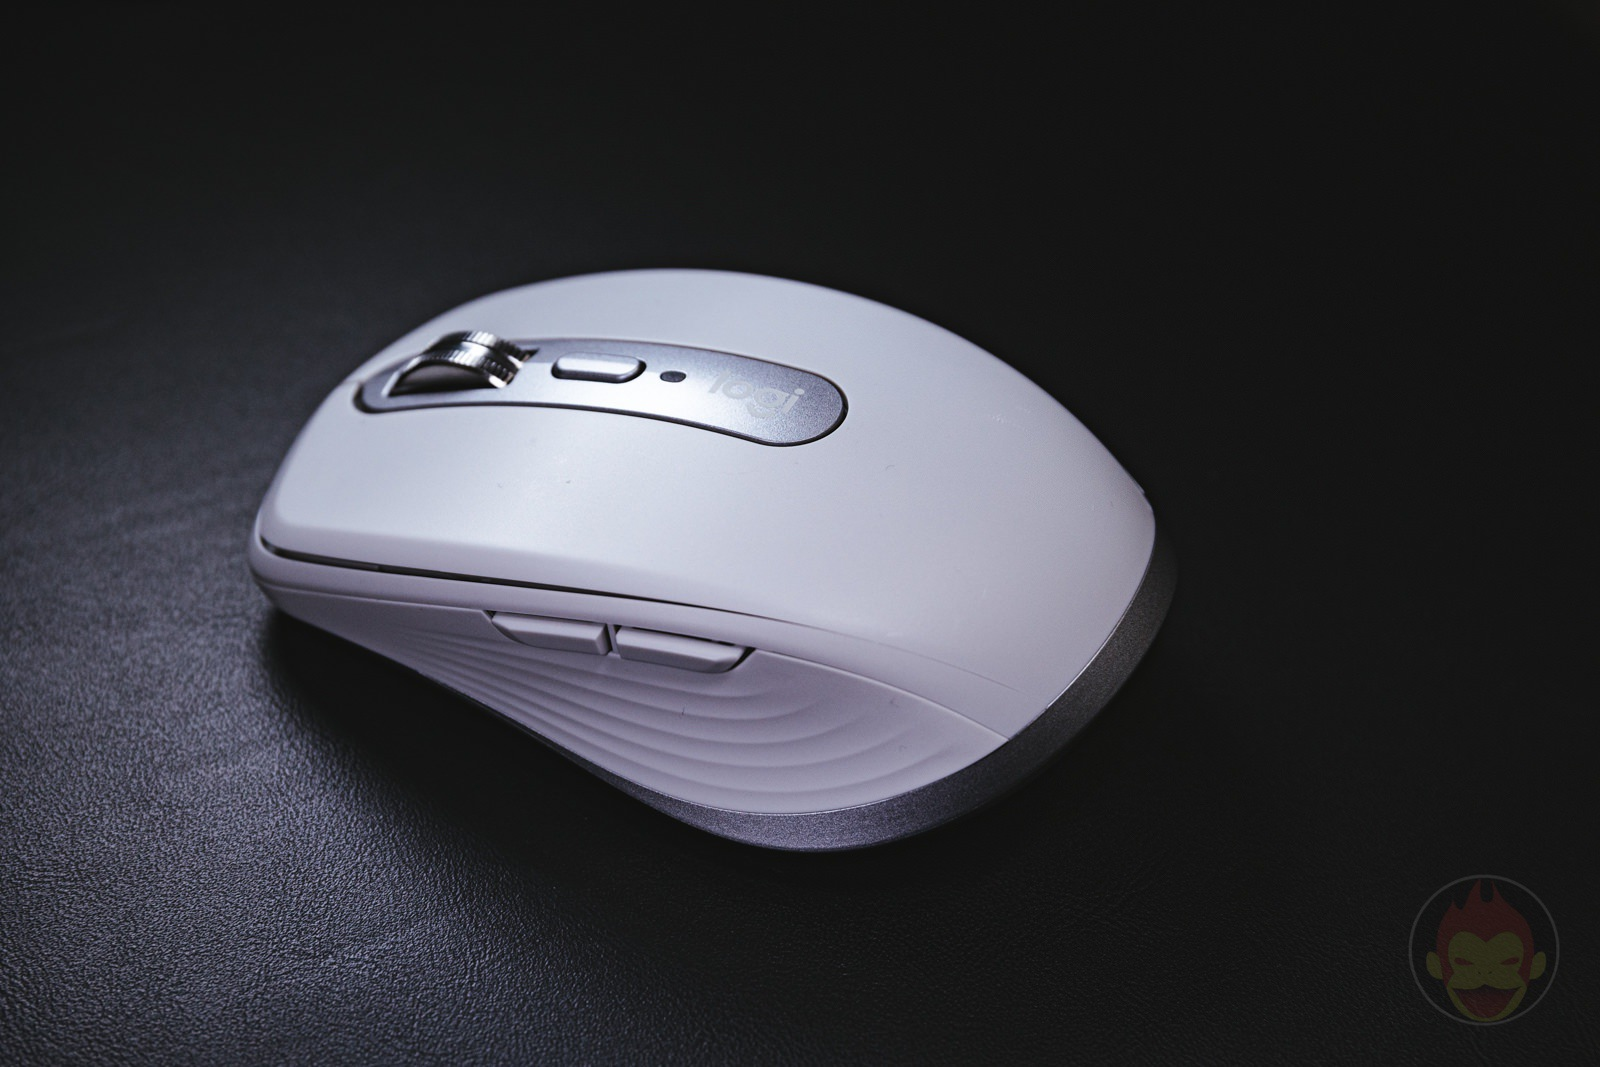 Logicool MX Anywhere 3 Mouse Review 04